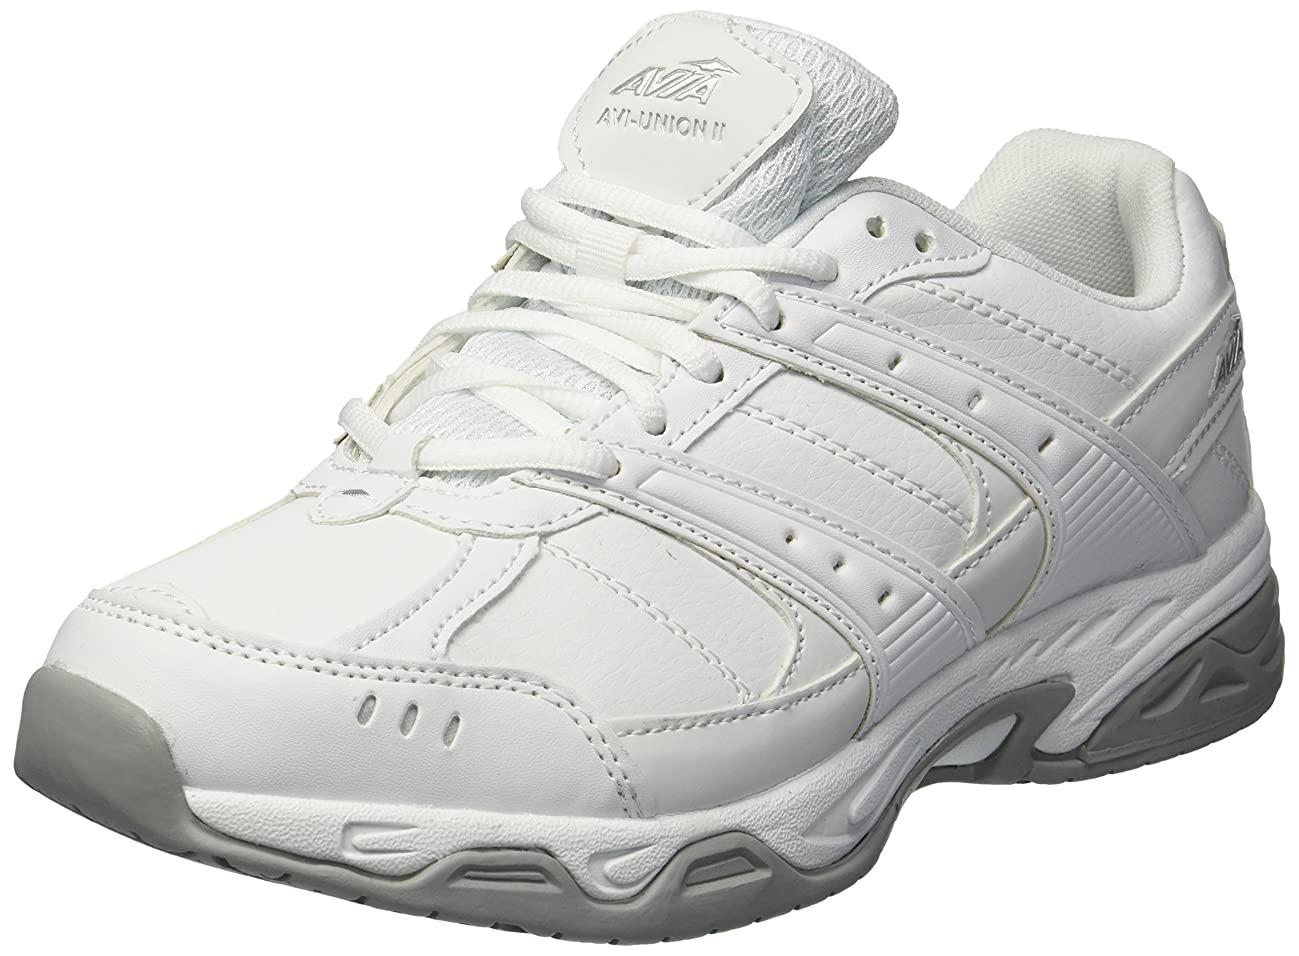 Avia Women's Avi-Union Ii Food Service Shoe